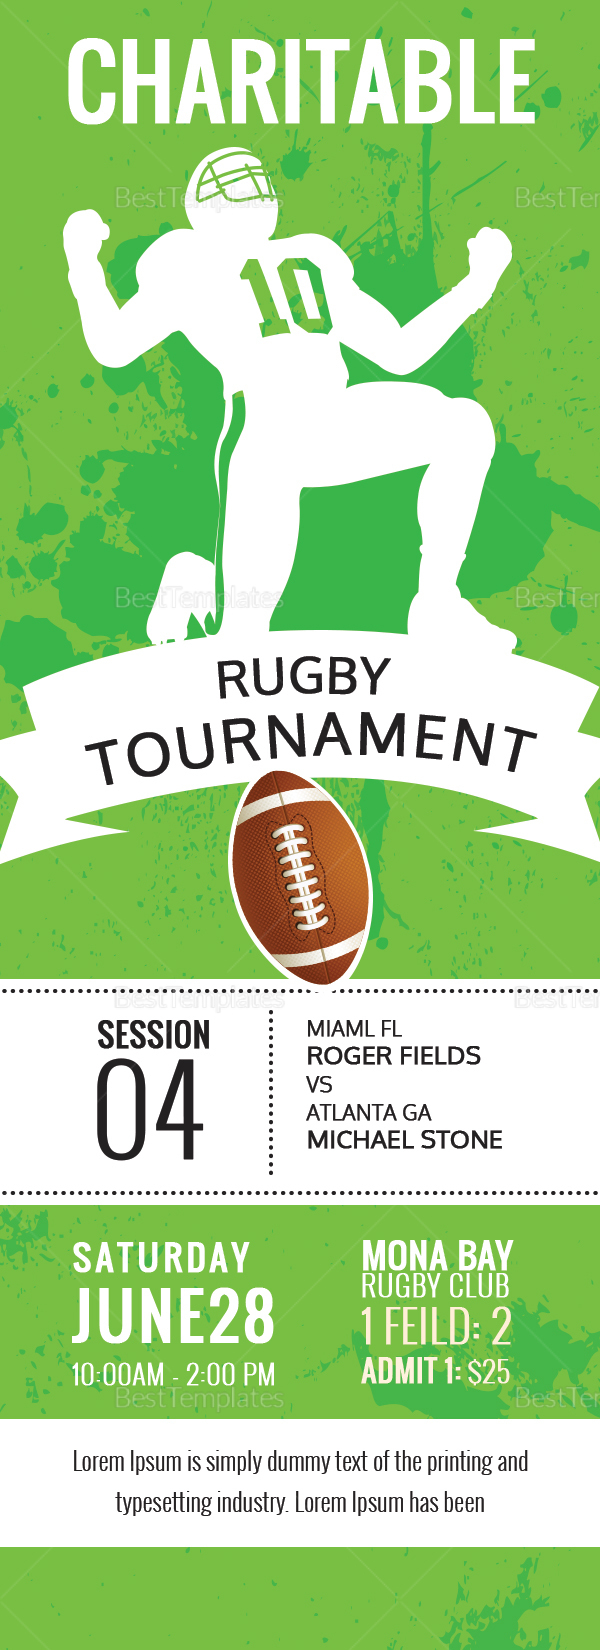 Rugby Tournament Ticket Design Template